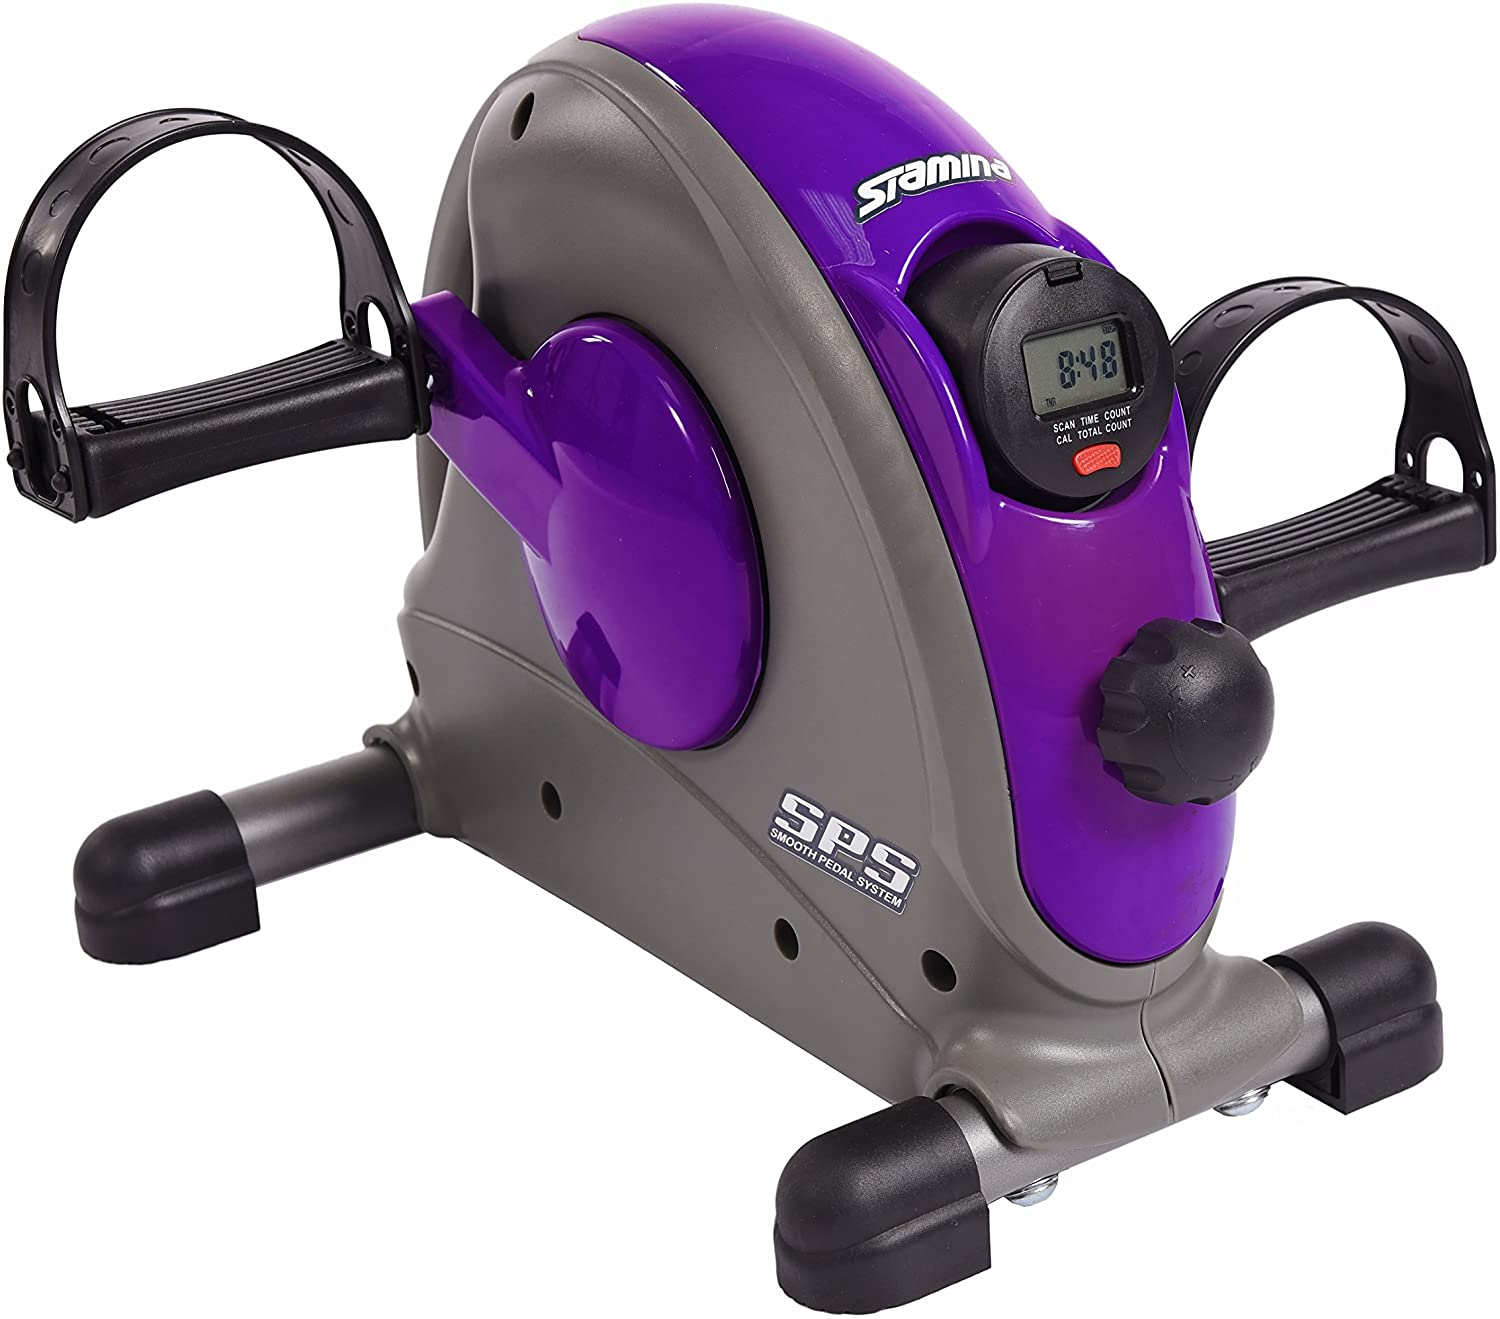 Stamina Mini Exercise Bike with Smooth Pedal System, Purple